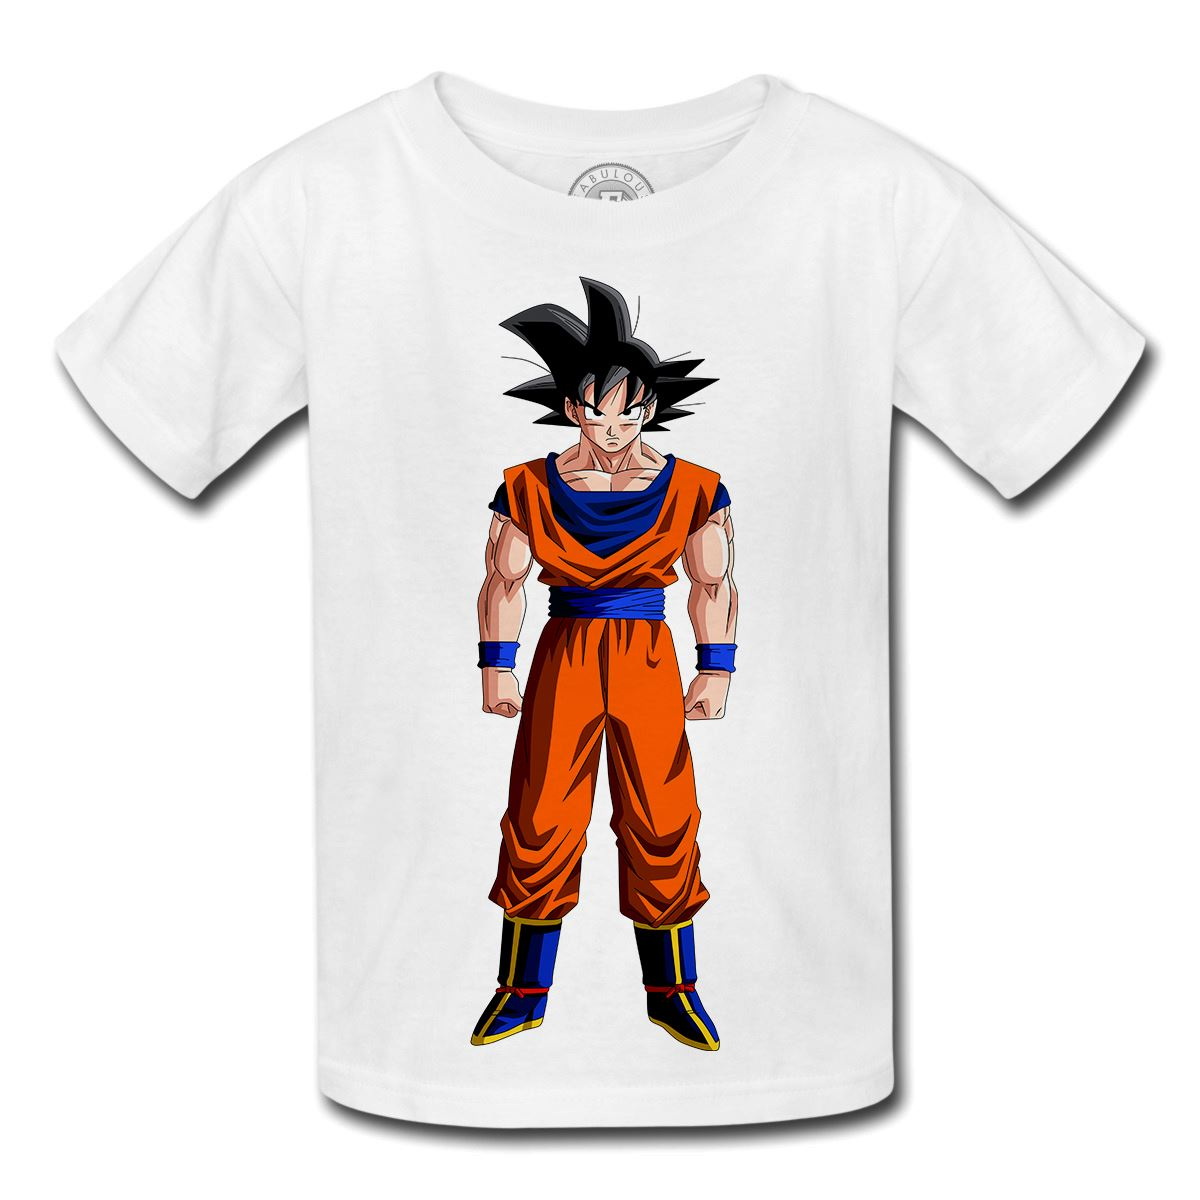 T-shirt-Enfant-Dragon-Ball-Z-anime-manga-japan-son-goku-sangoku